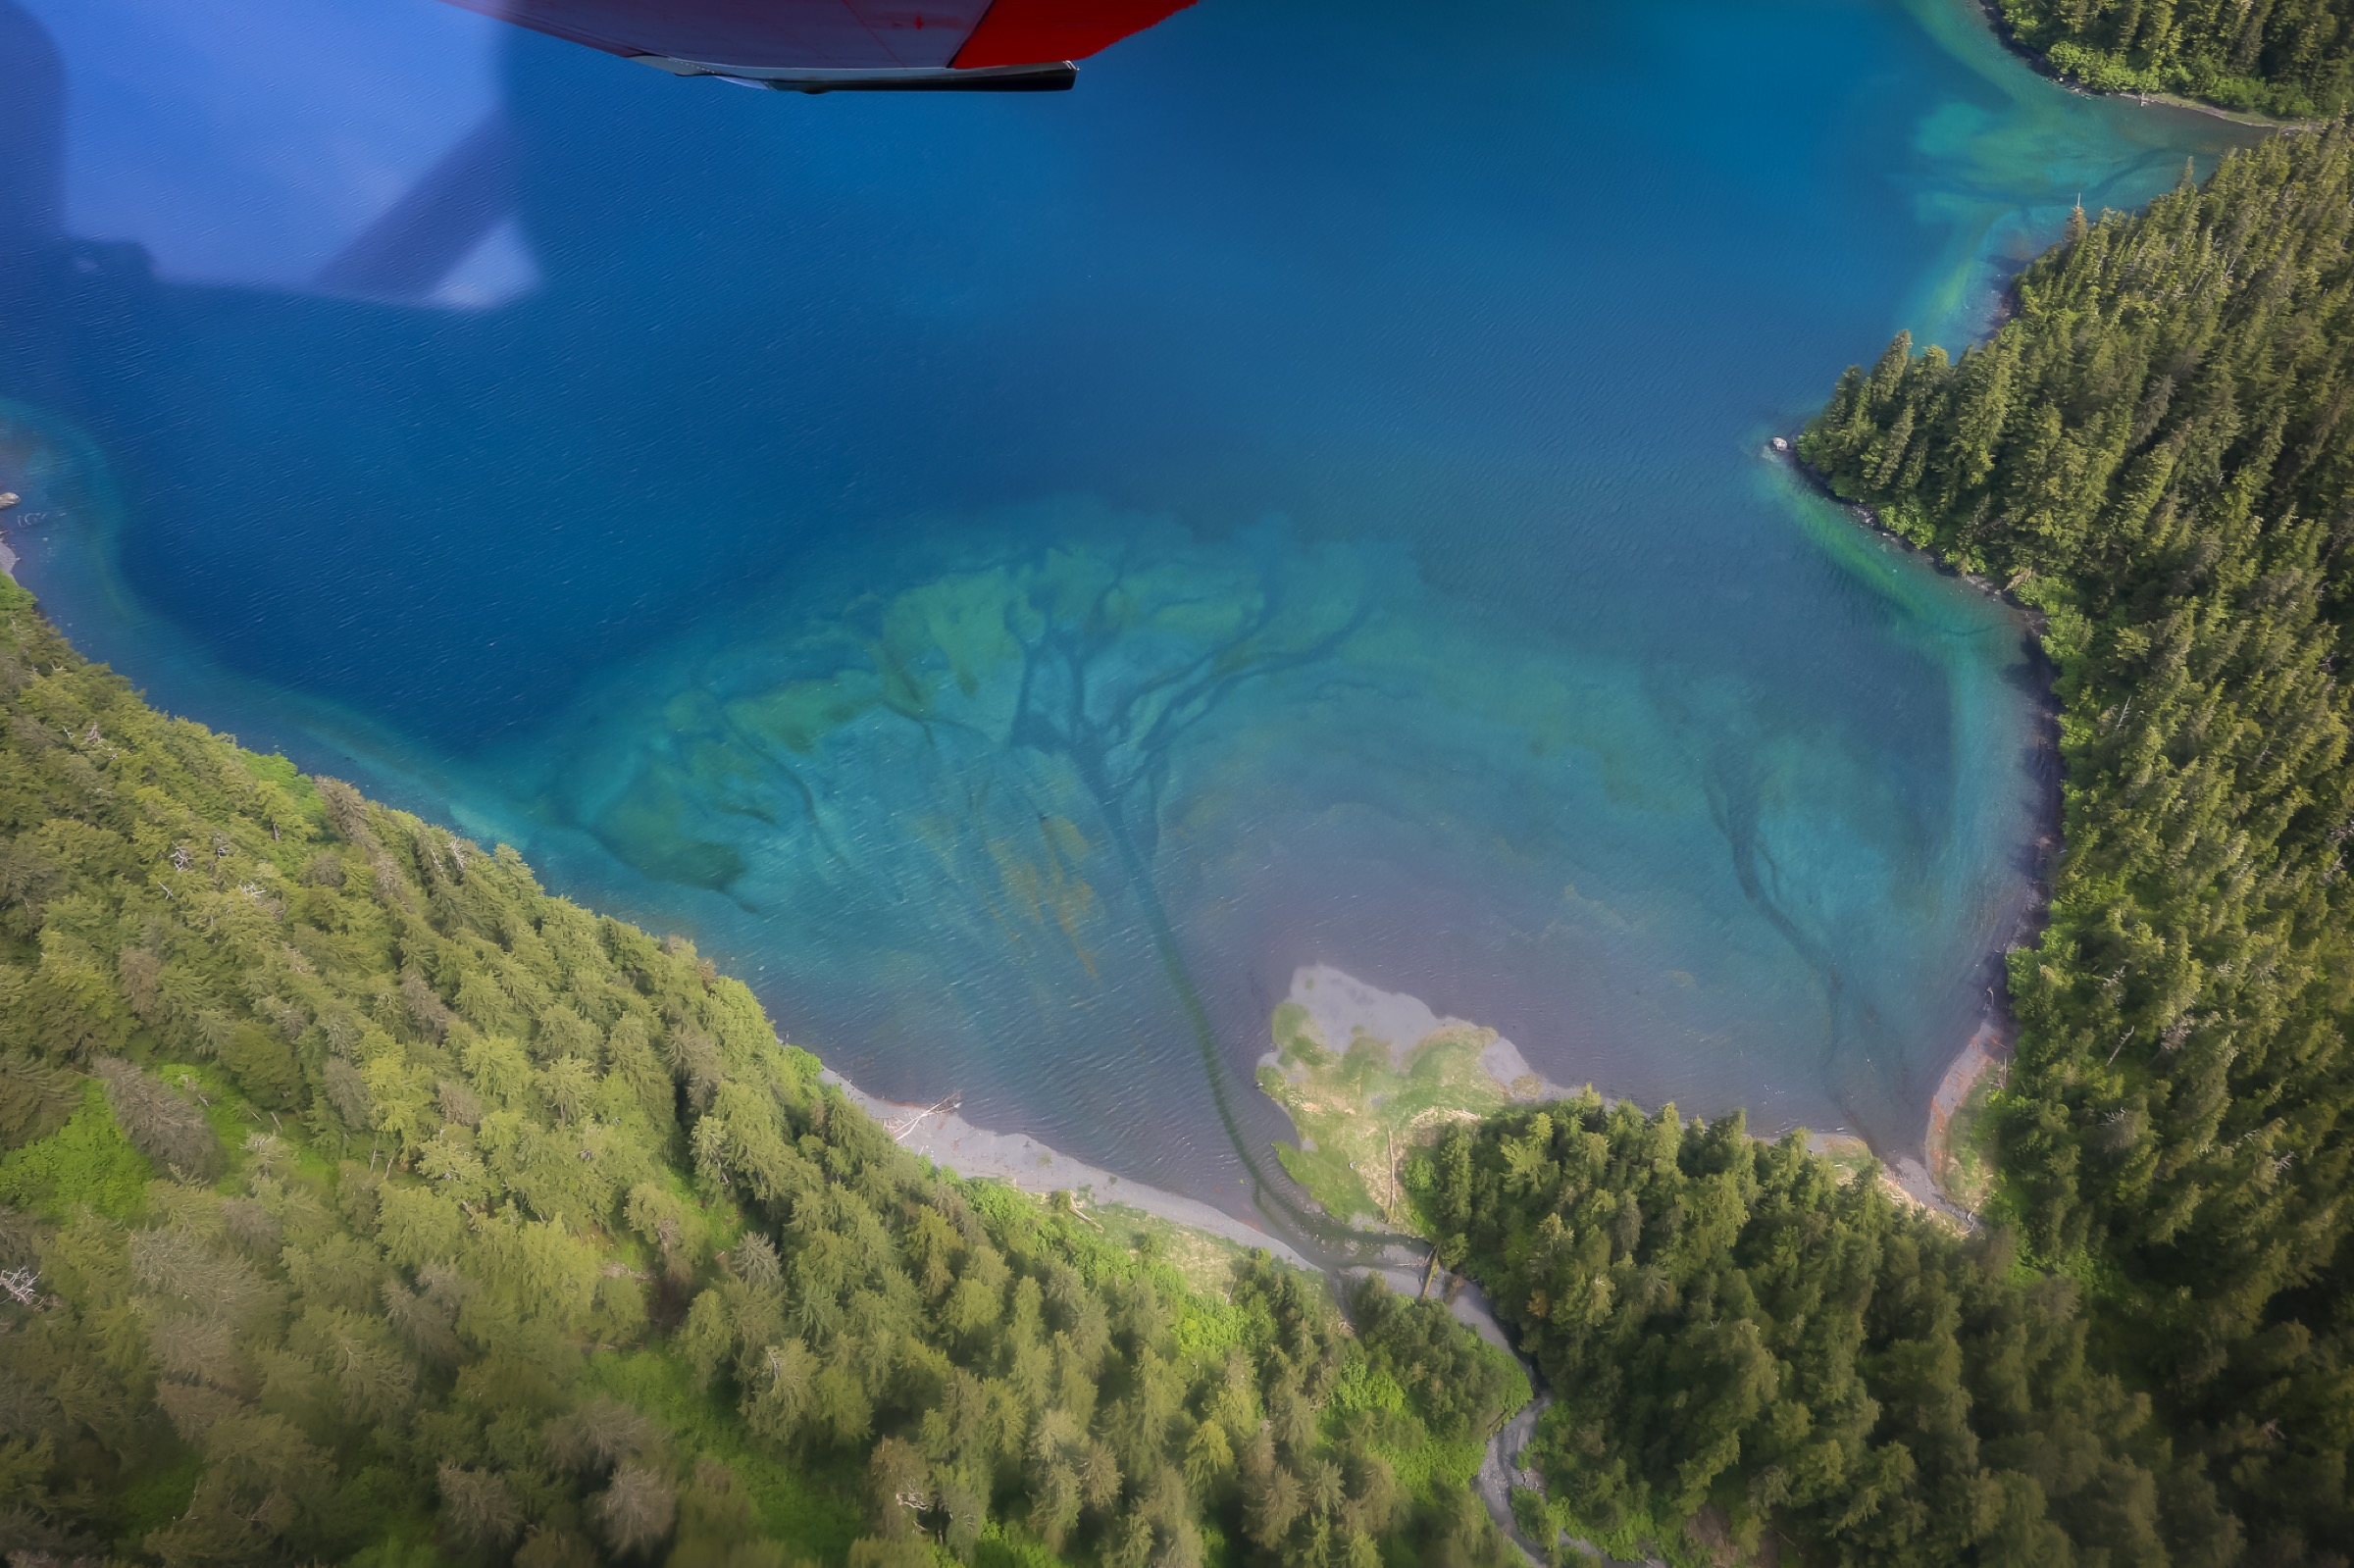 A view from the plane, showing the head of Shelter Bay on Evans Island in western Prince William Sound. Photograph by Julia Rosen